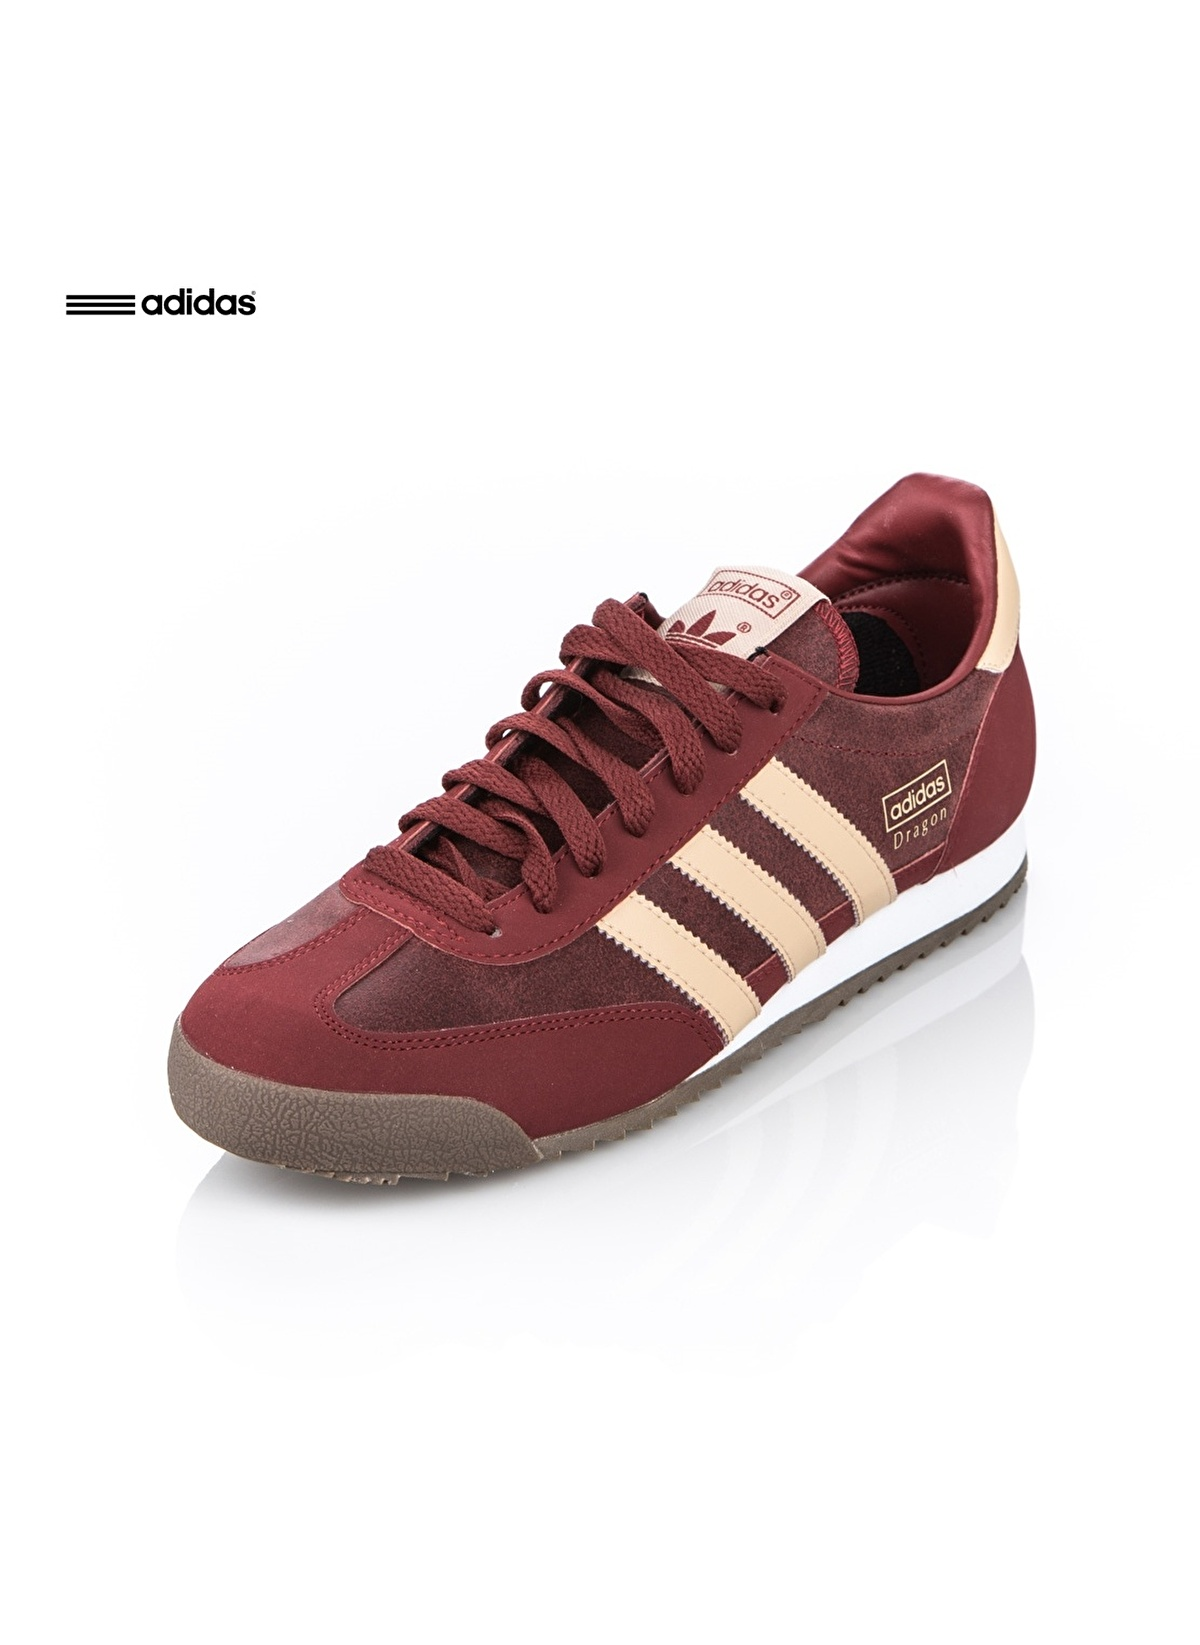 adidas dragon ykm